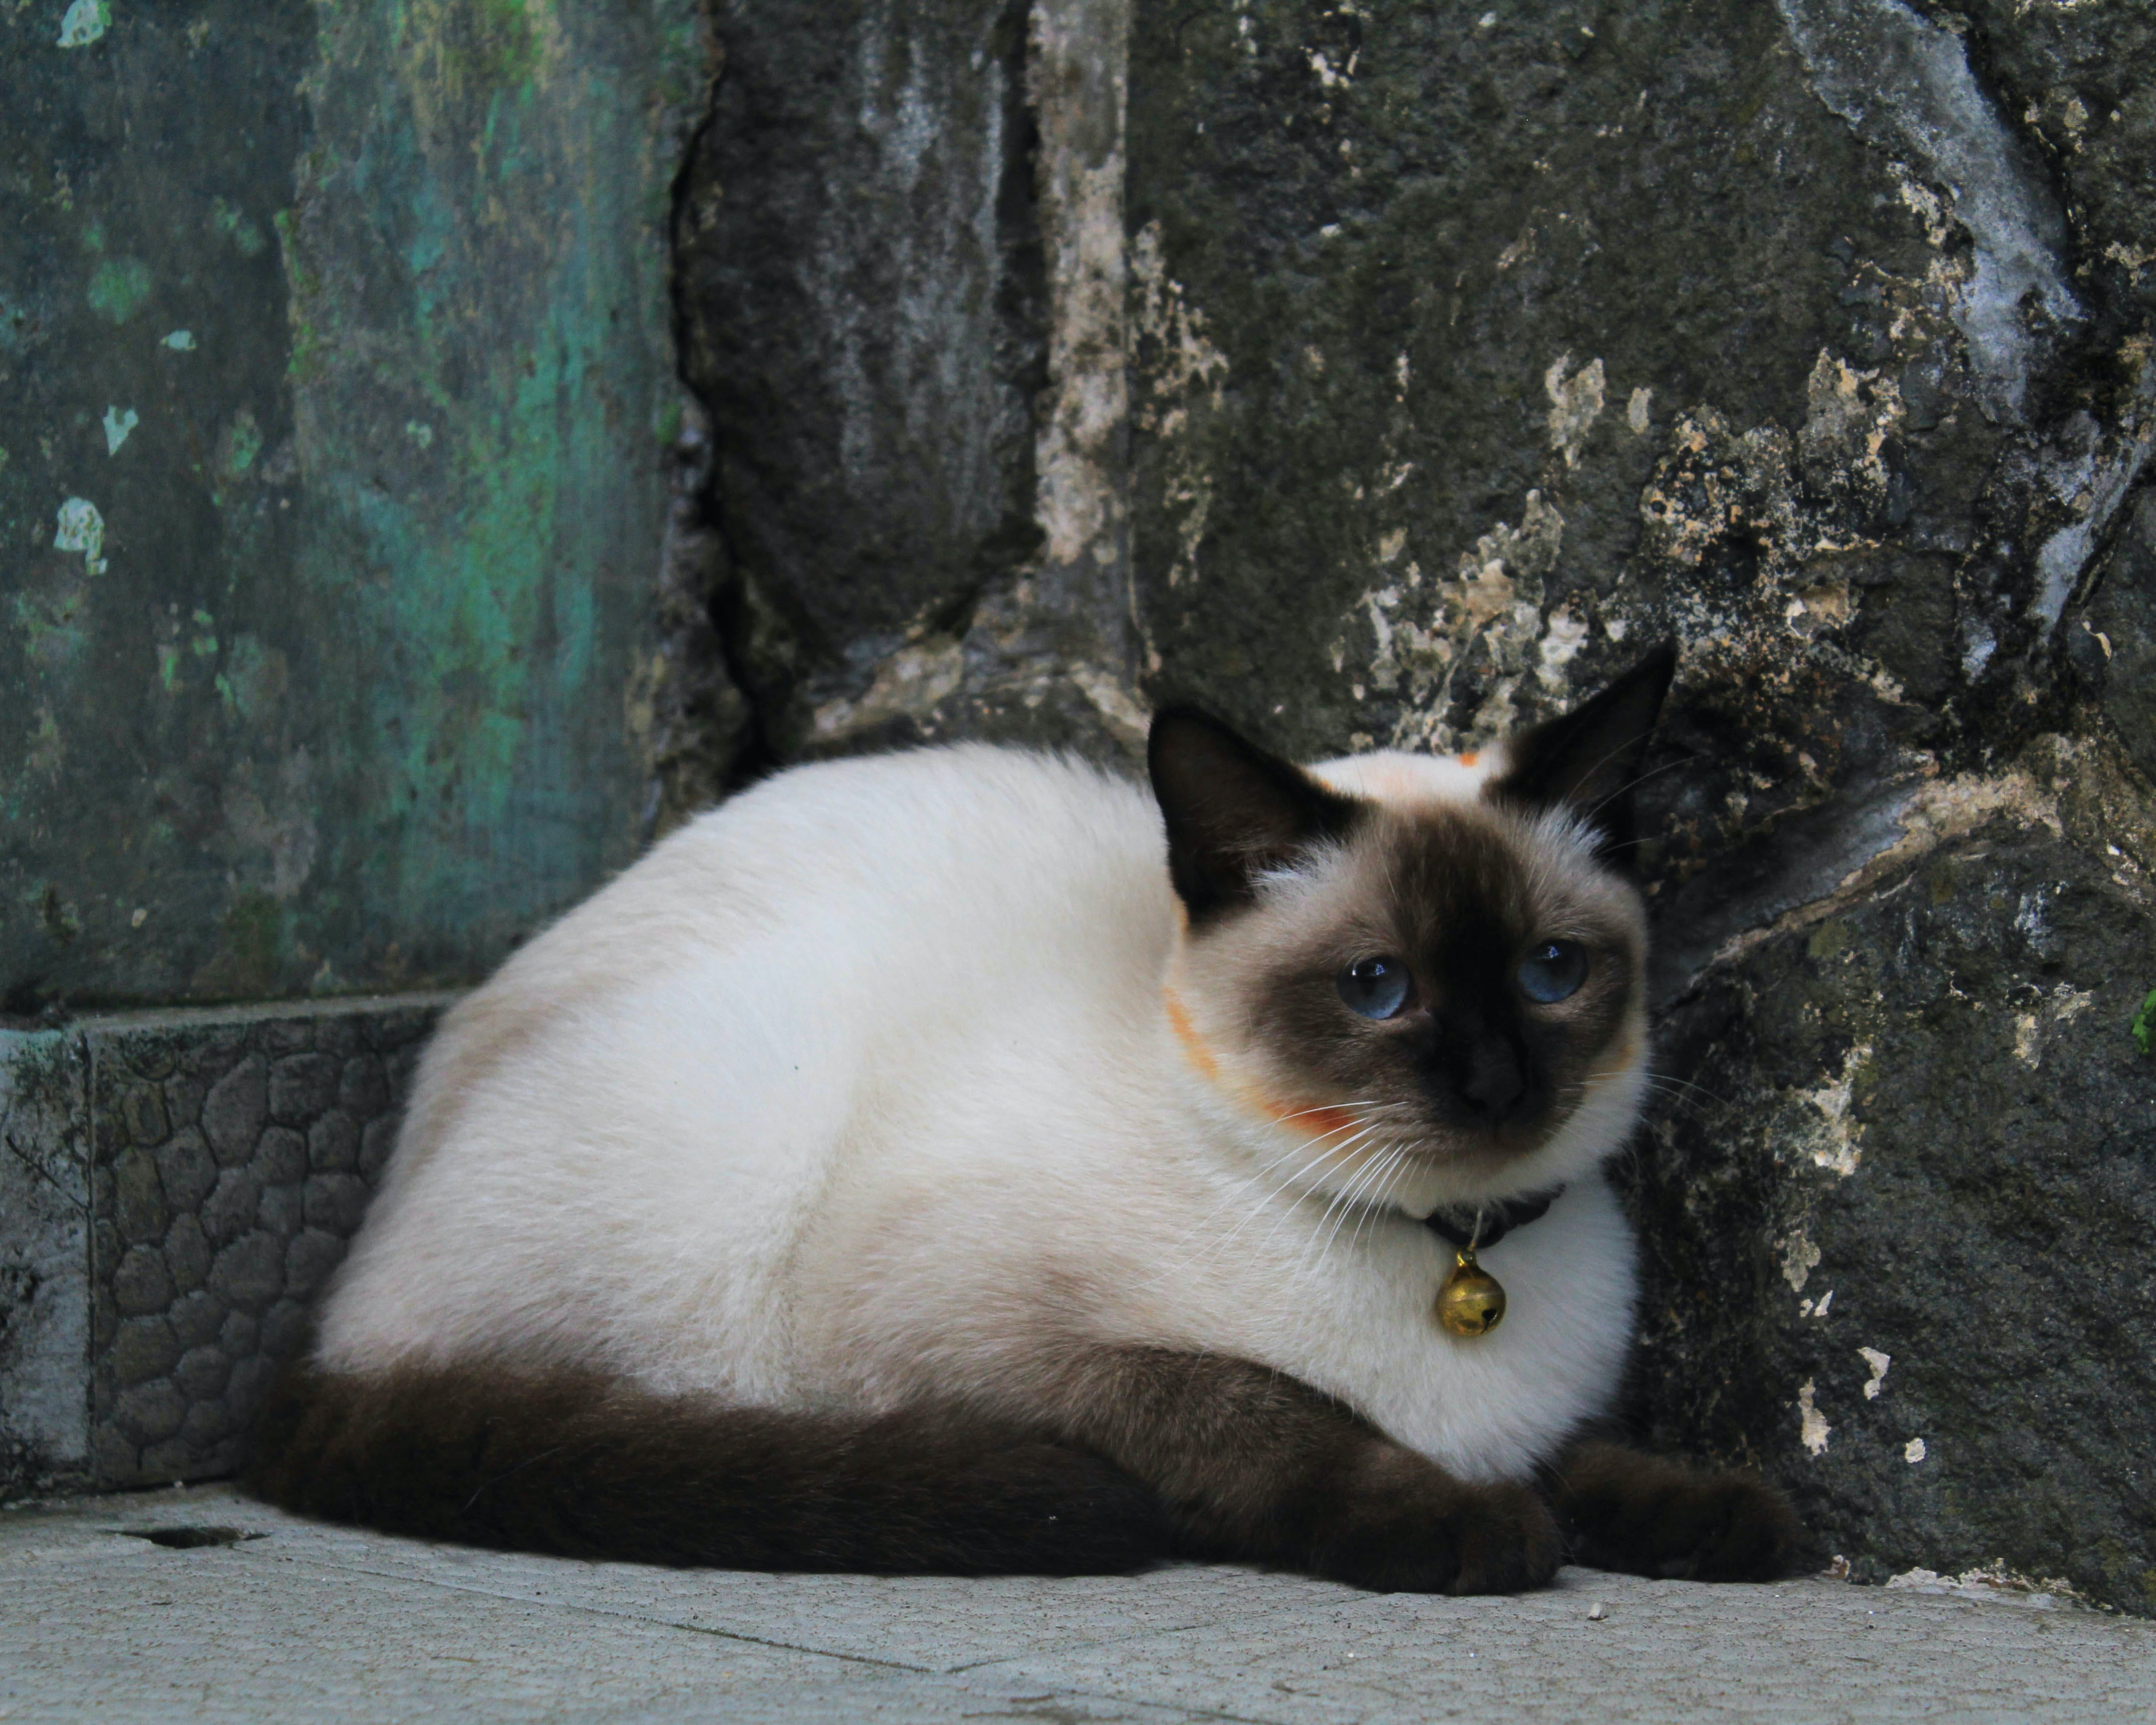 Short-furred White and Black Cat on Gray Concrete Surface